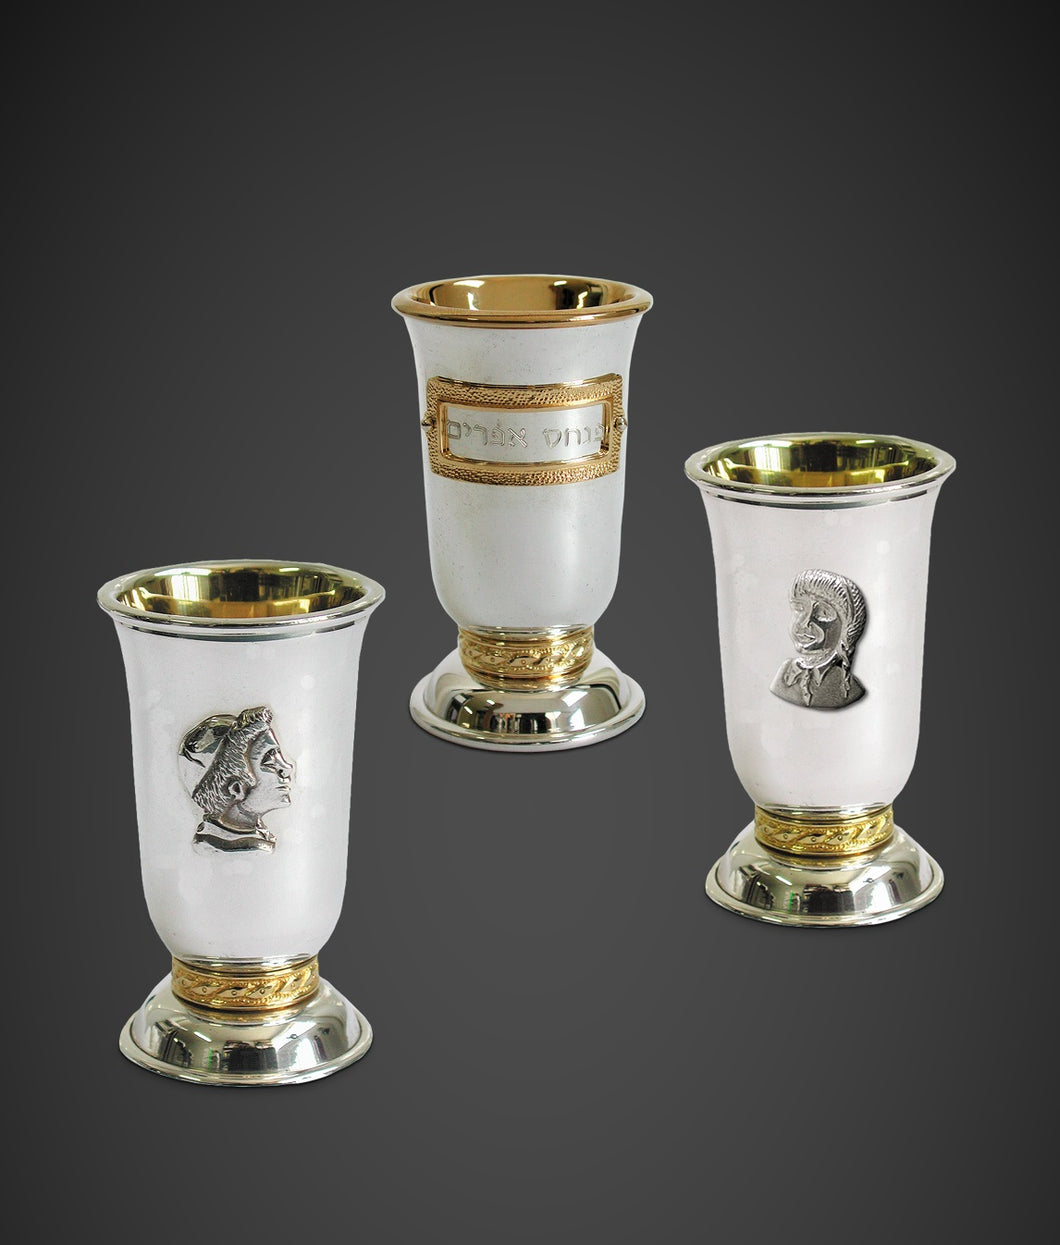 The Little Boy-Girl Kiddush Cup